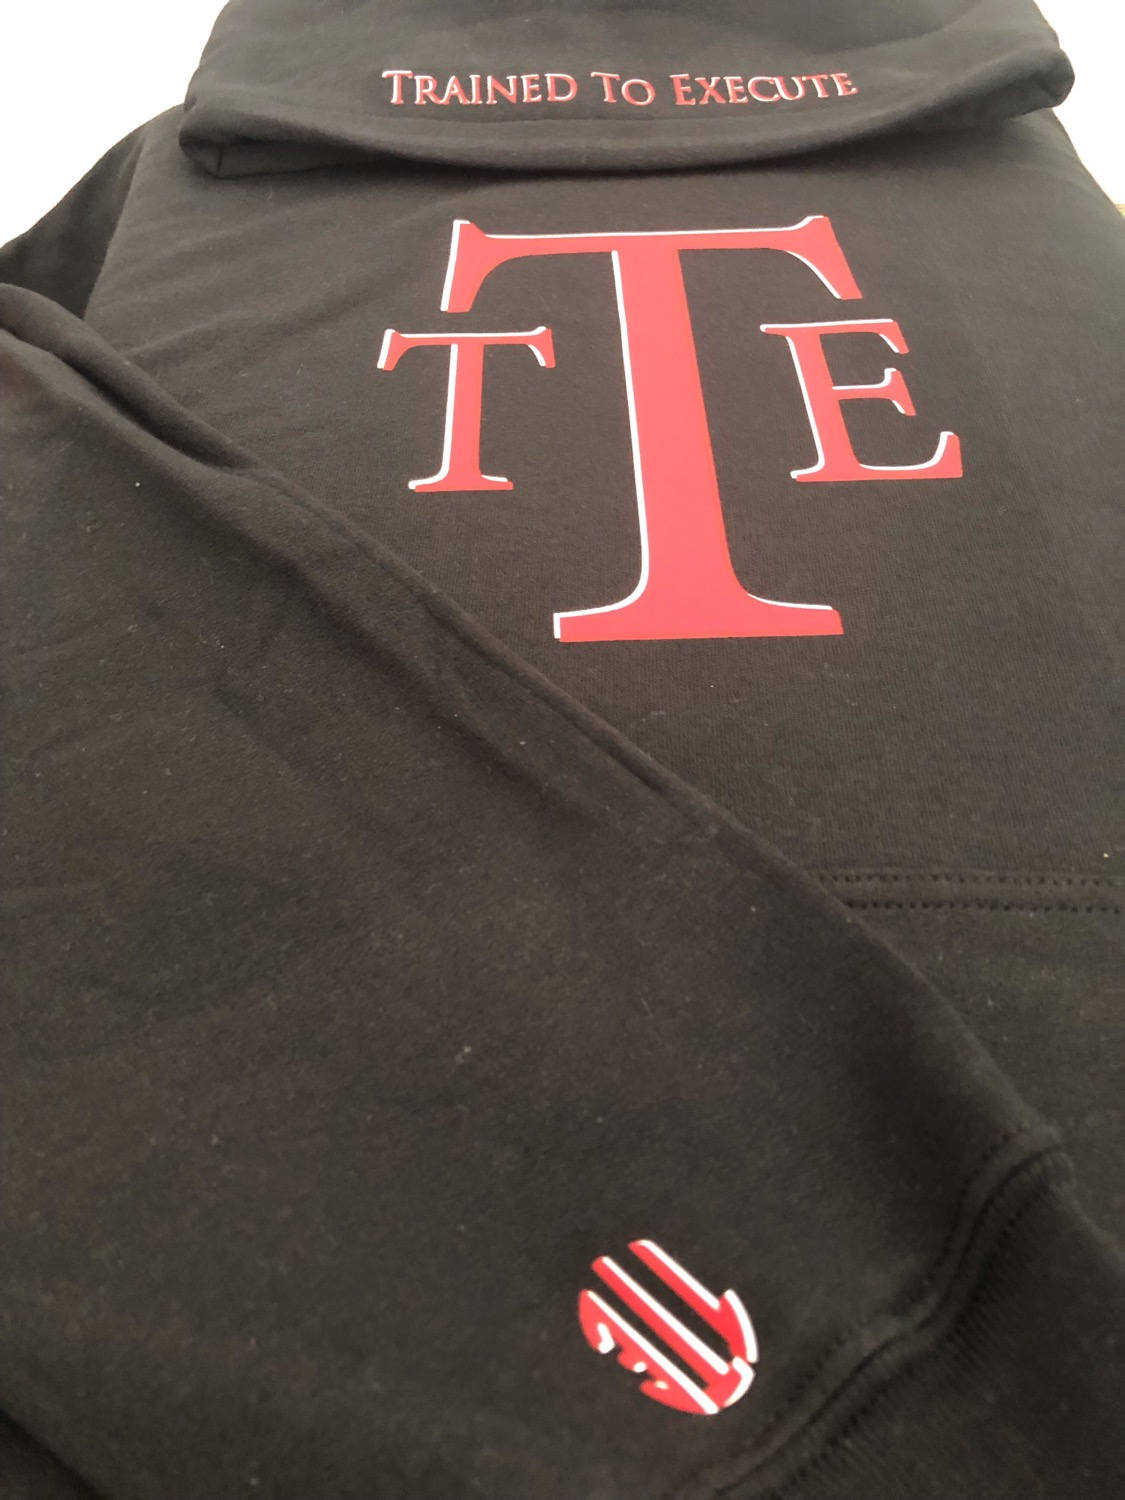 TTE Trained To Execute lettering blk Hoodie W/ Red & white print